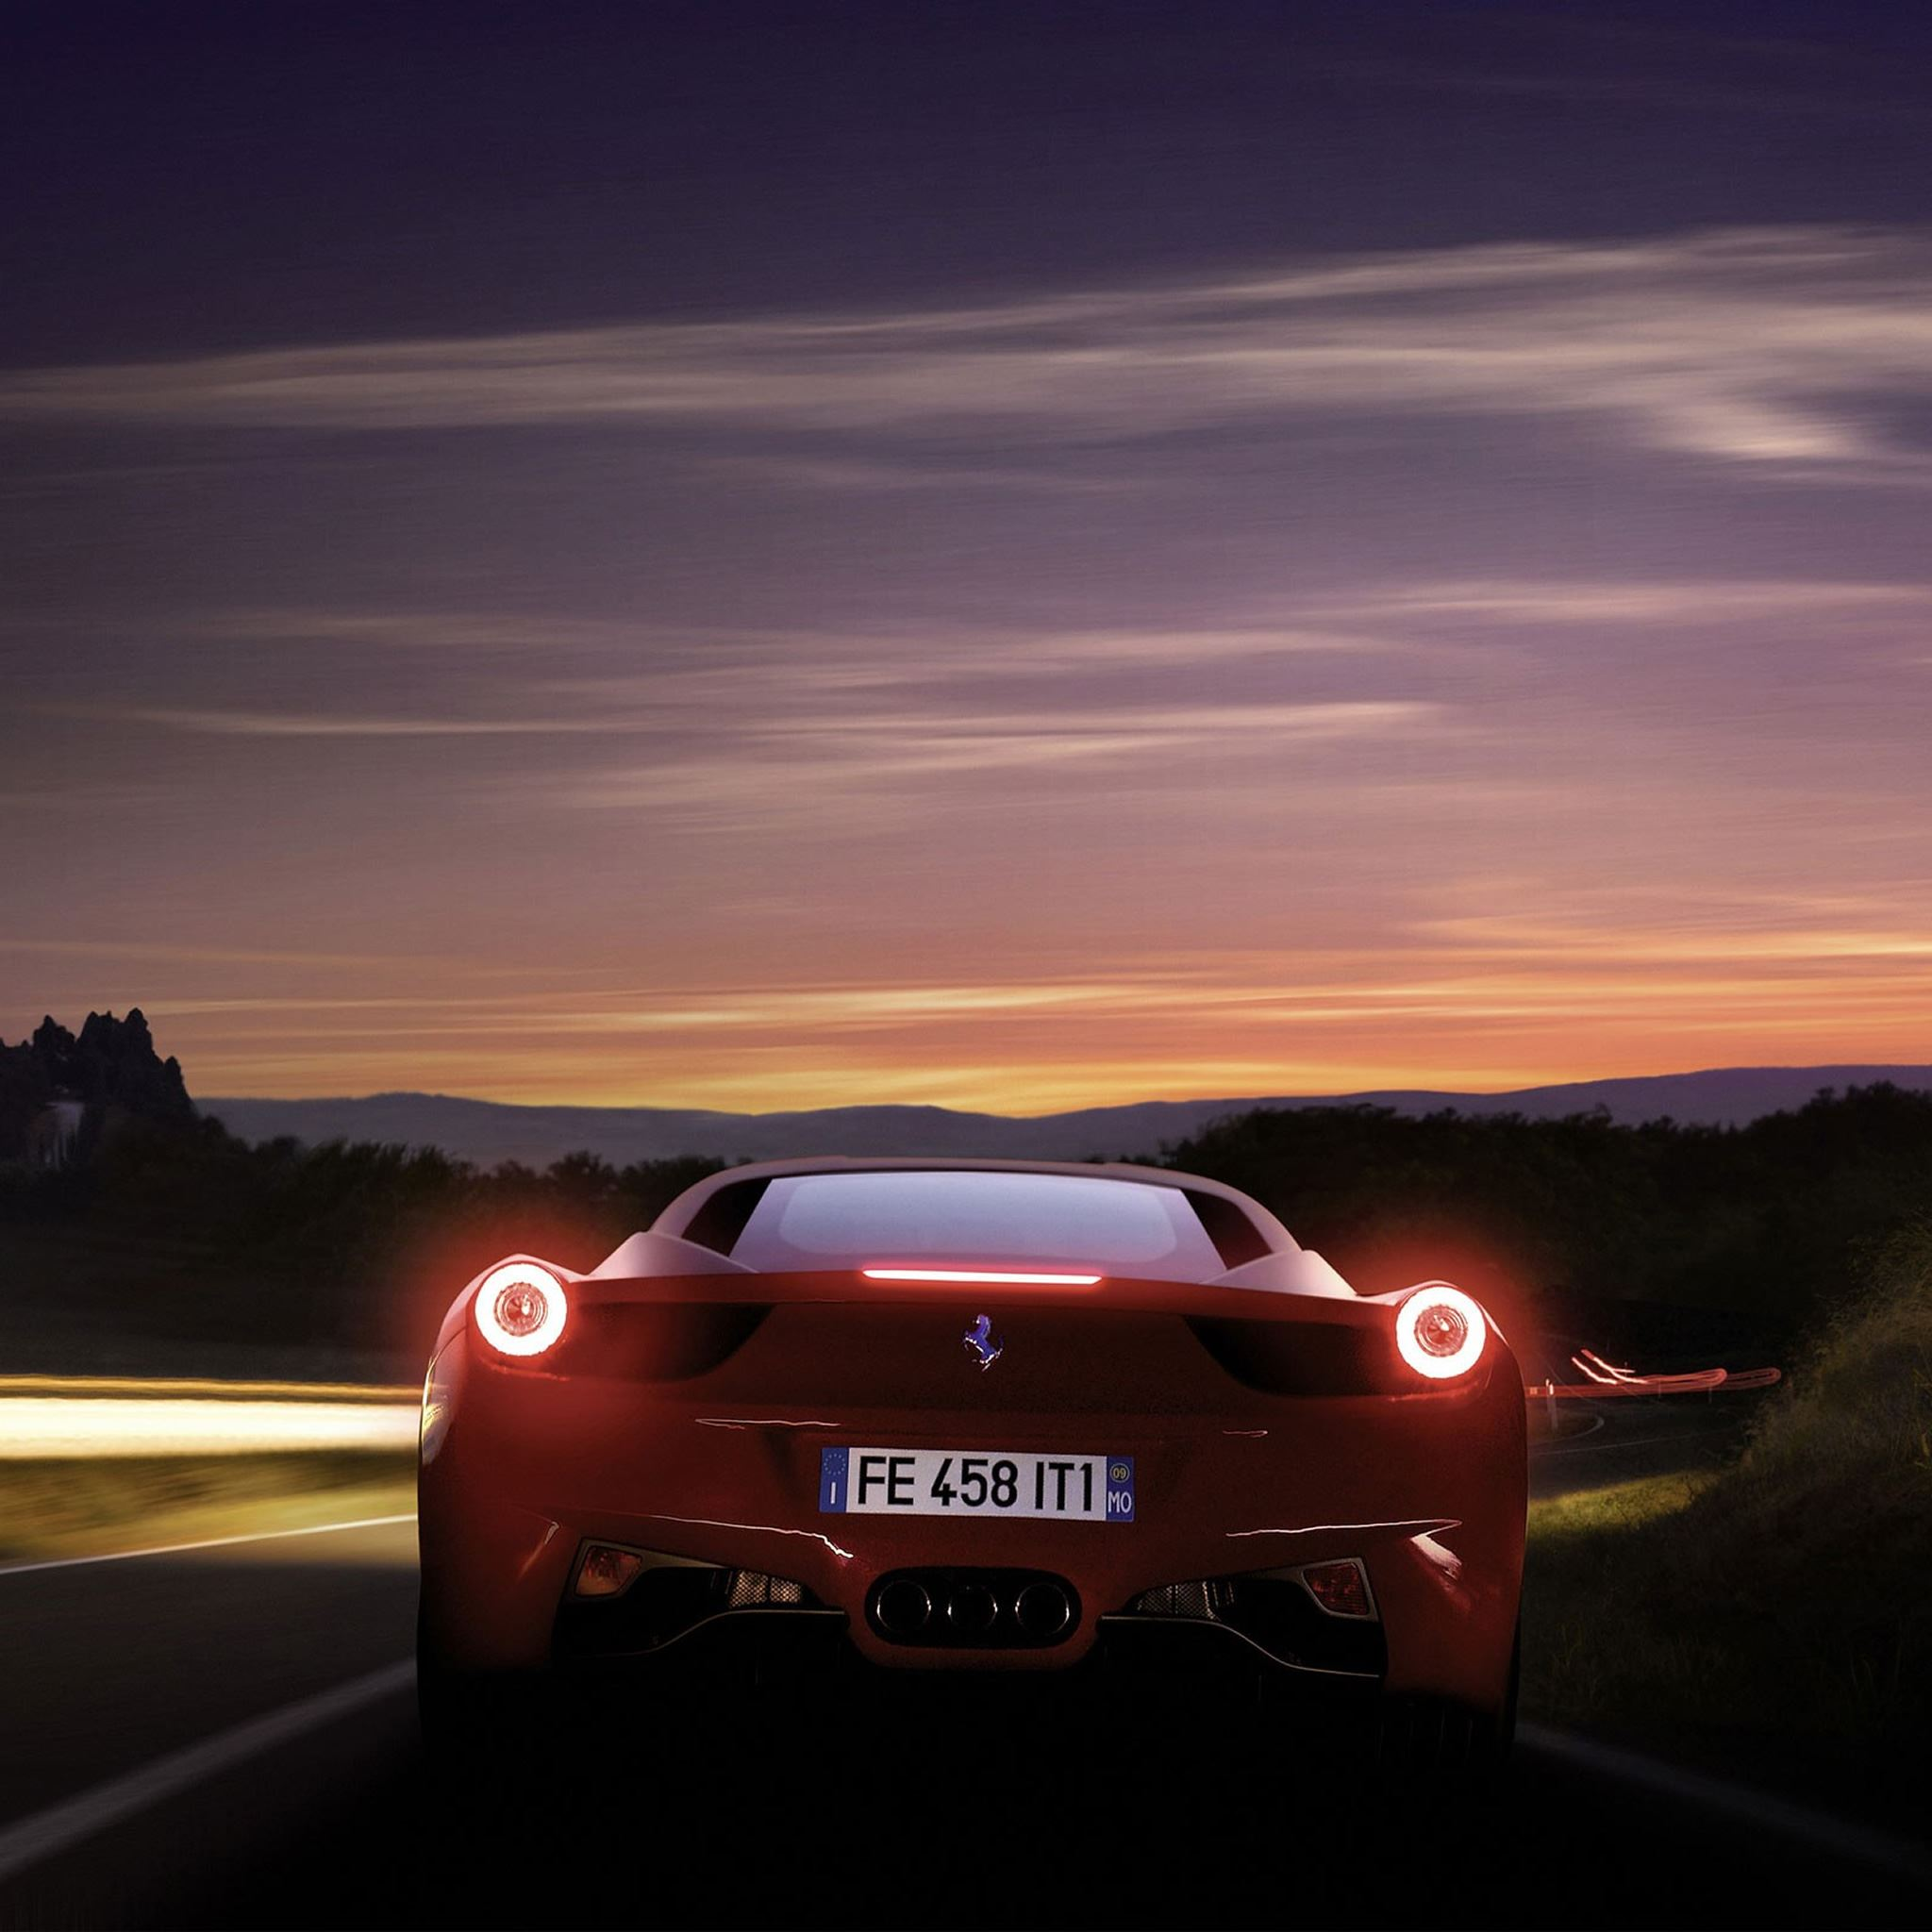 Running Ferrari 458 iPad Air wallpaper